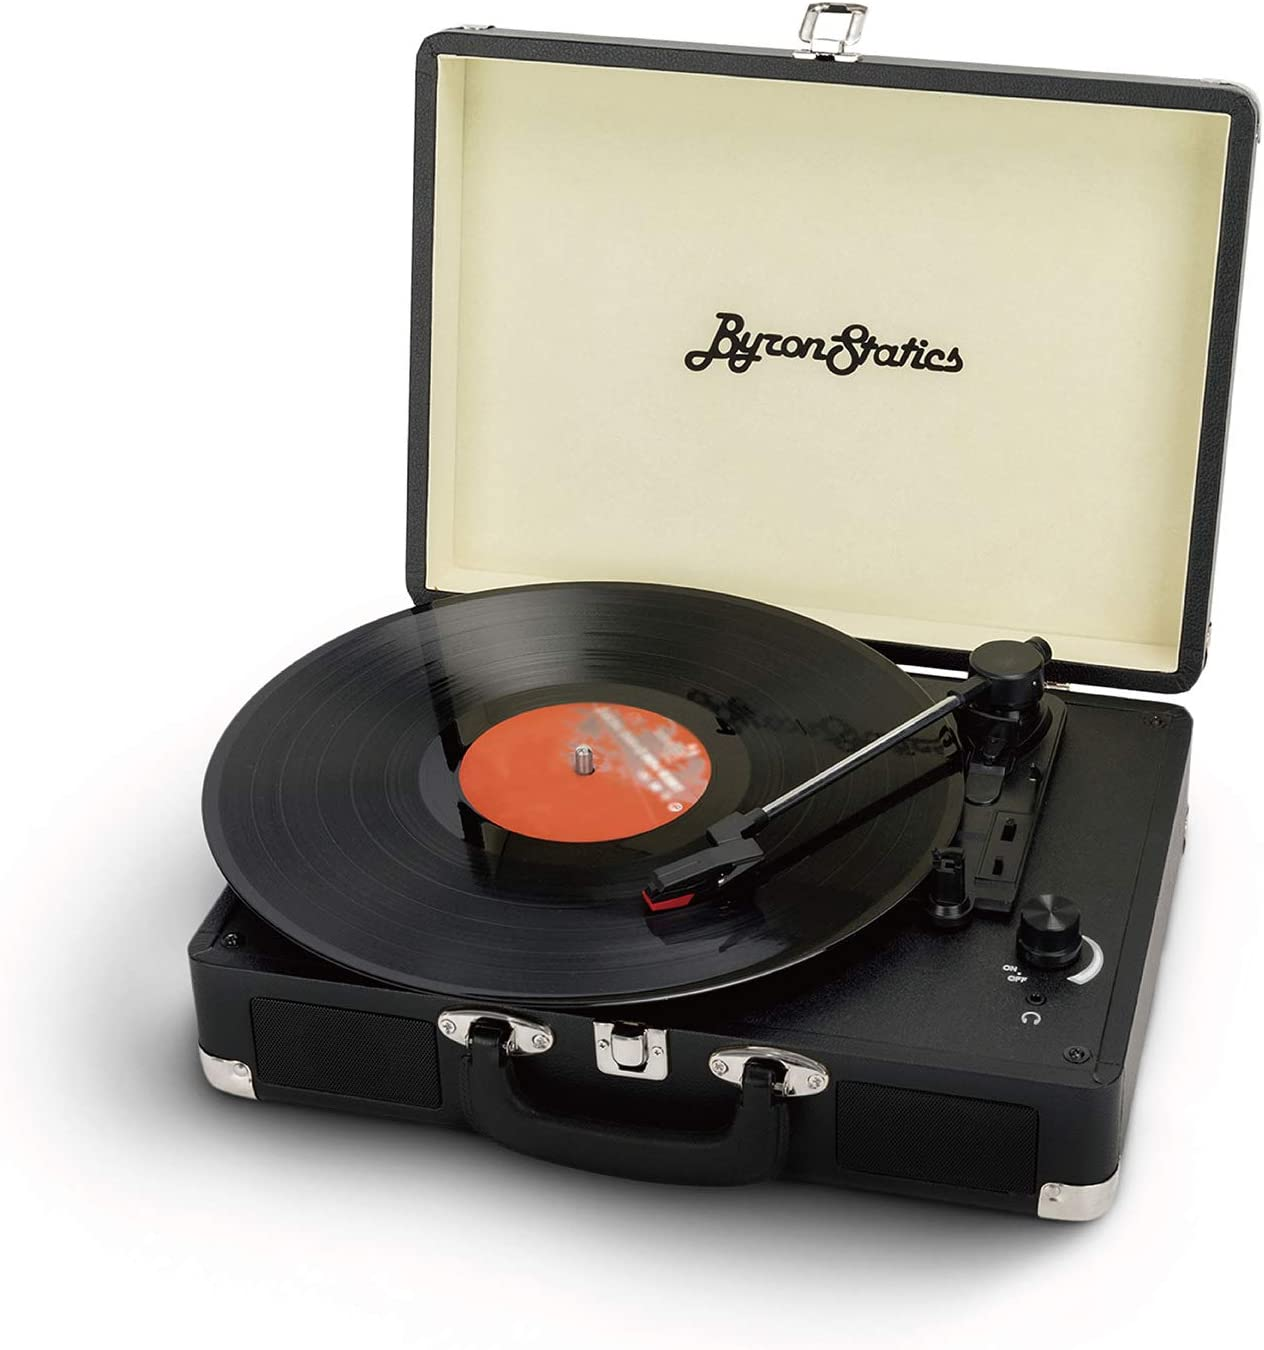 Byron Statics Turntable Vintage Record Player Portable Vinyl Player Nostalgic Built In 2 Stereo Speakers 3 Speeds Replacement Needle DC IN Standard RCA Headphone Outputs For Christmas Black Friday